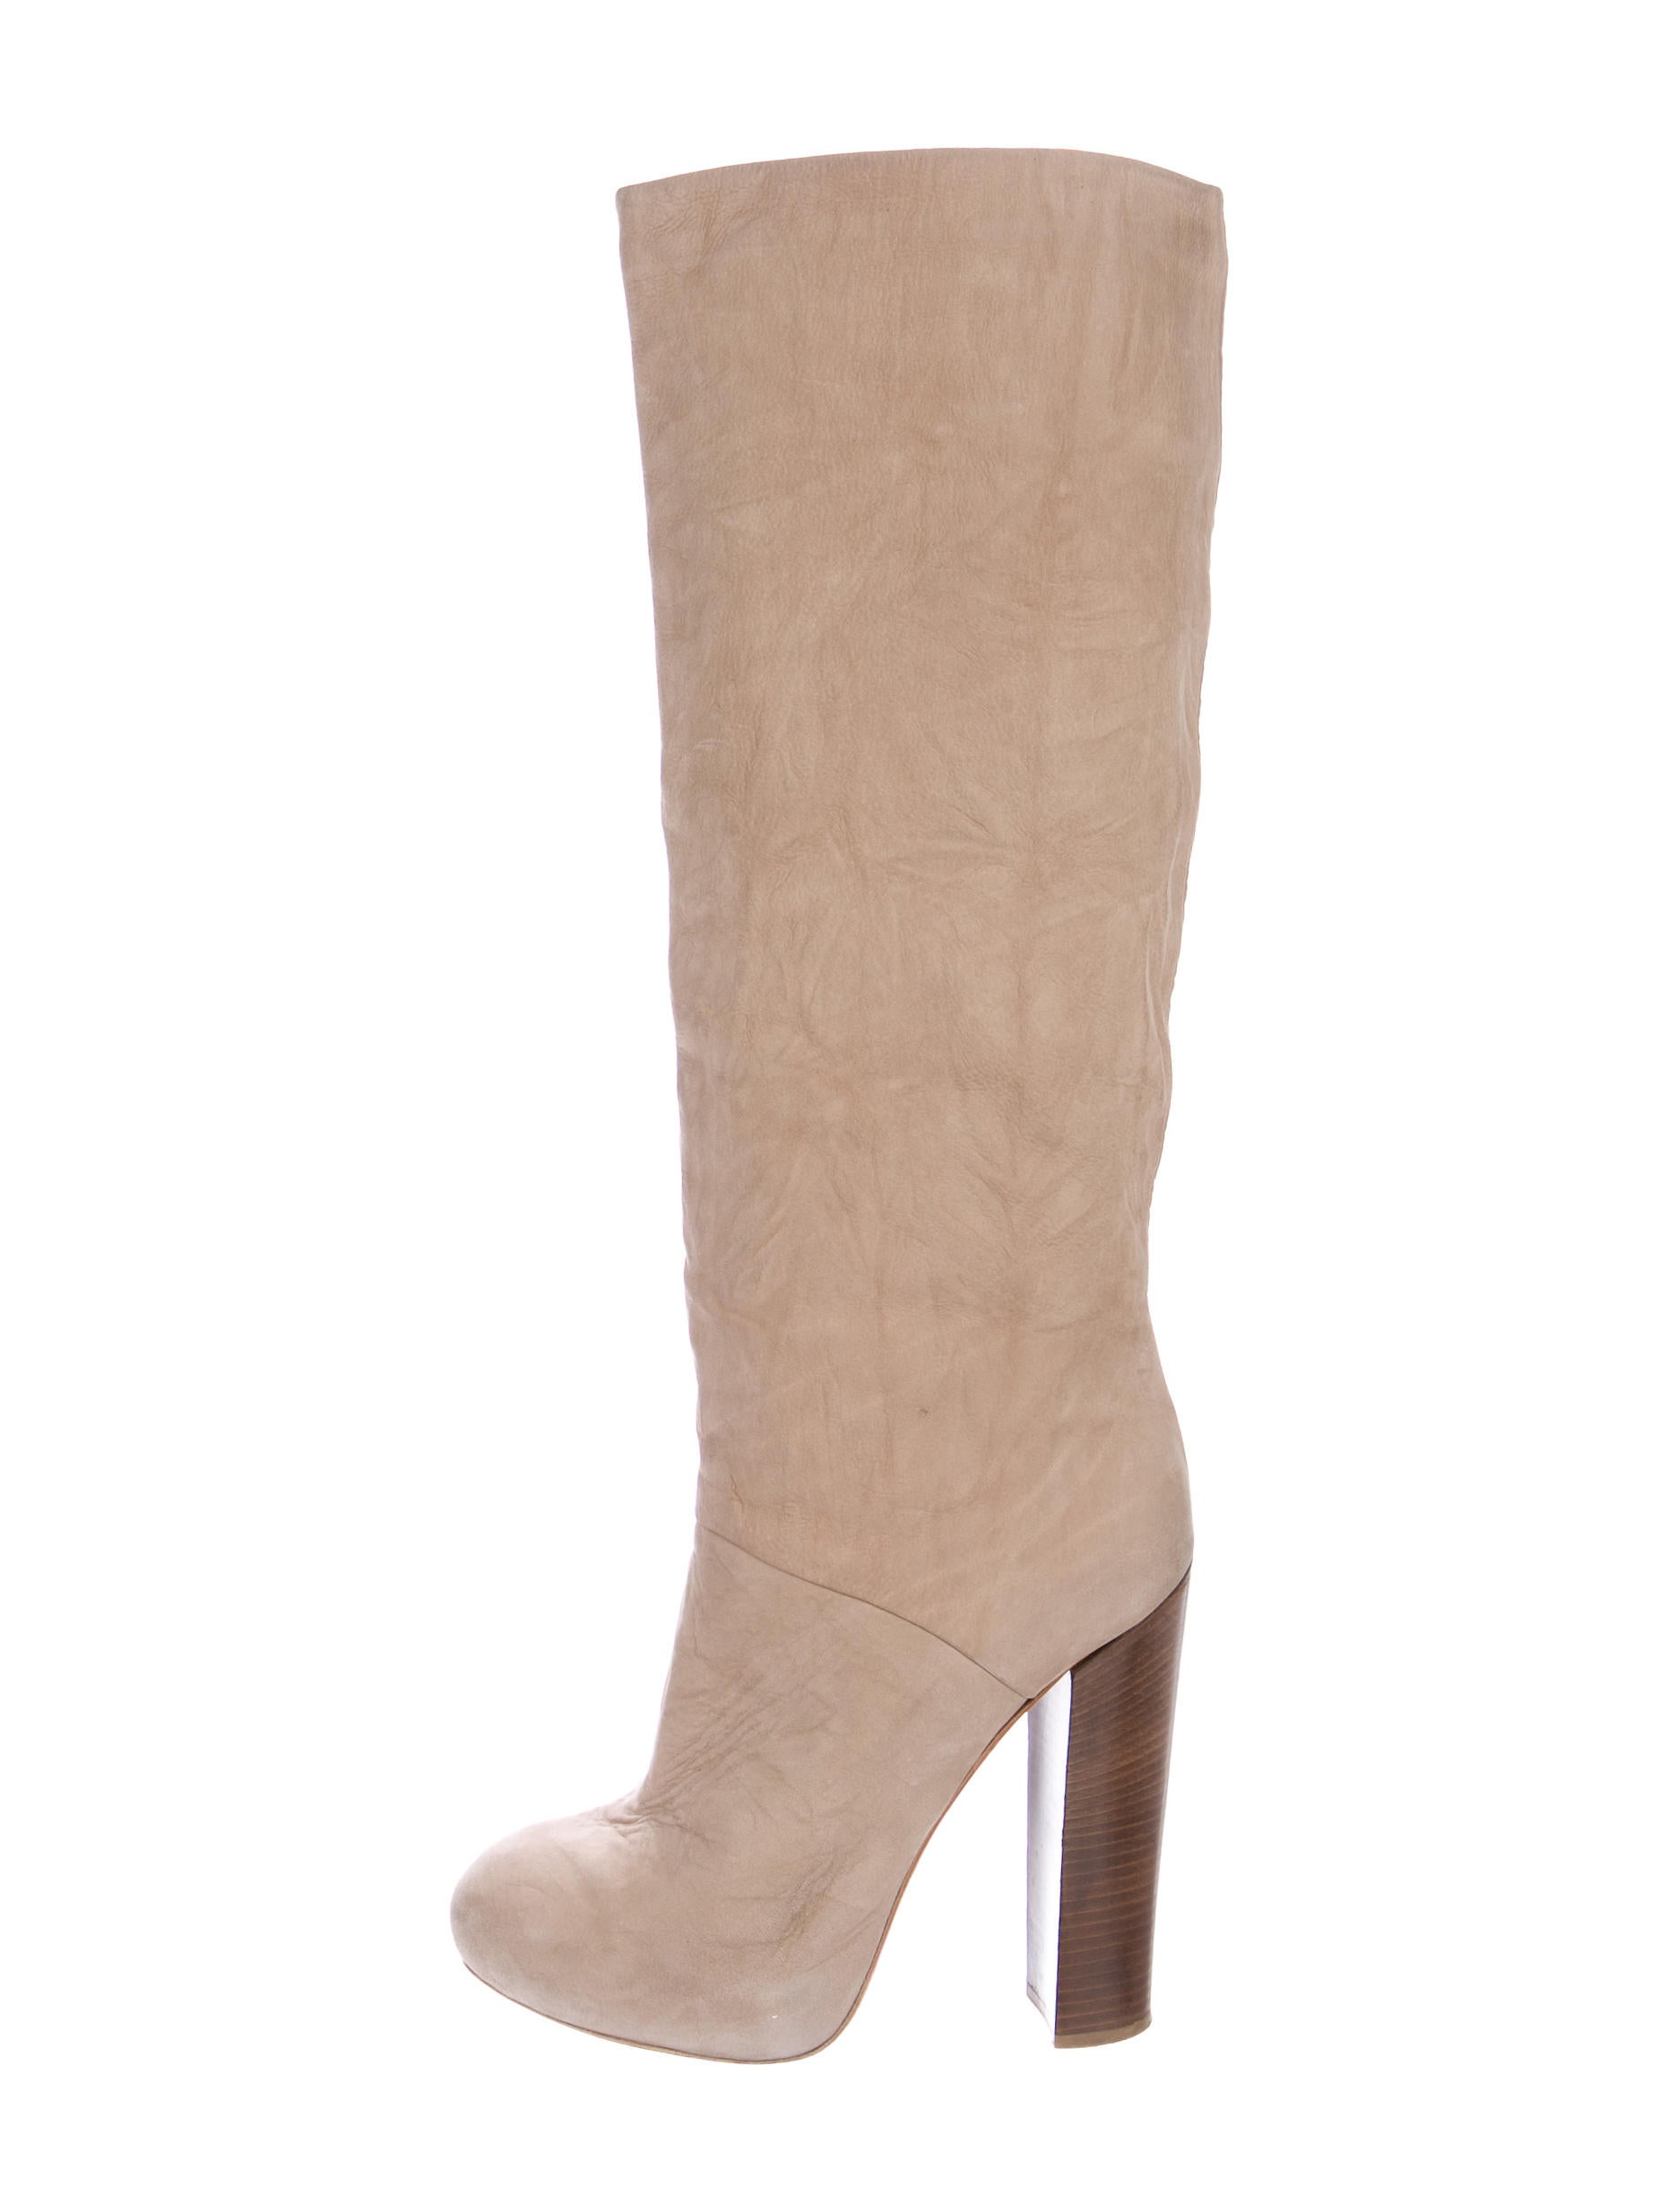 brian atwood suede knee high boots shoes bri24335